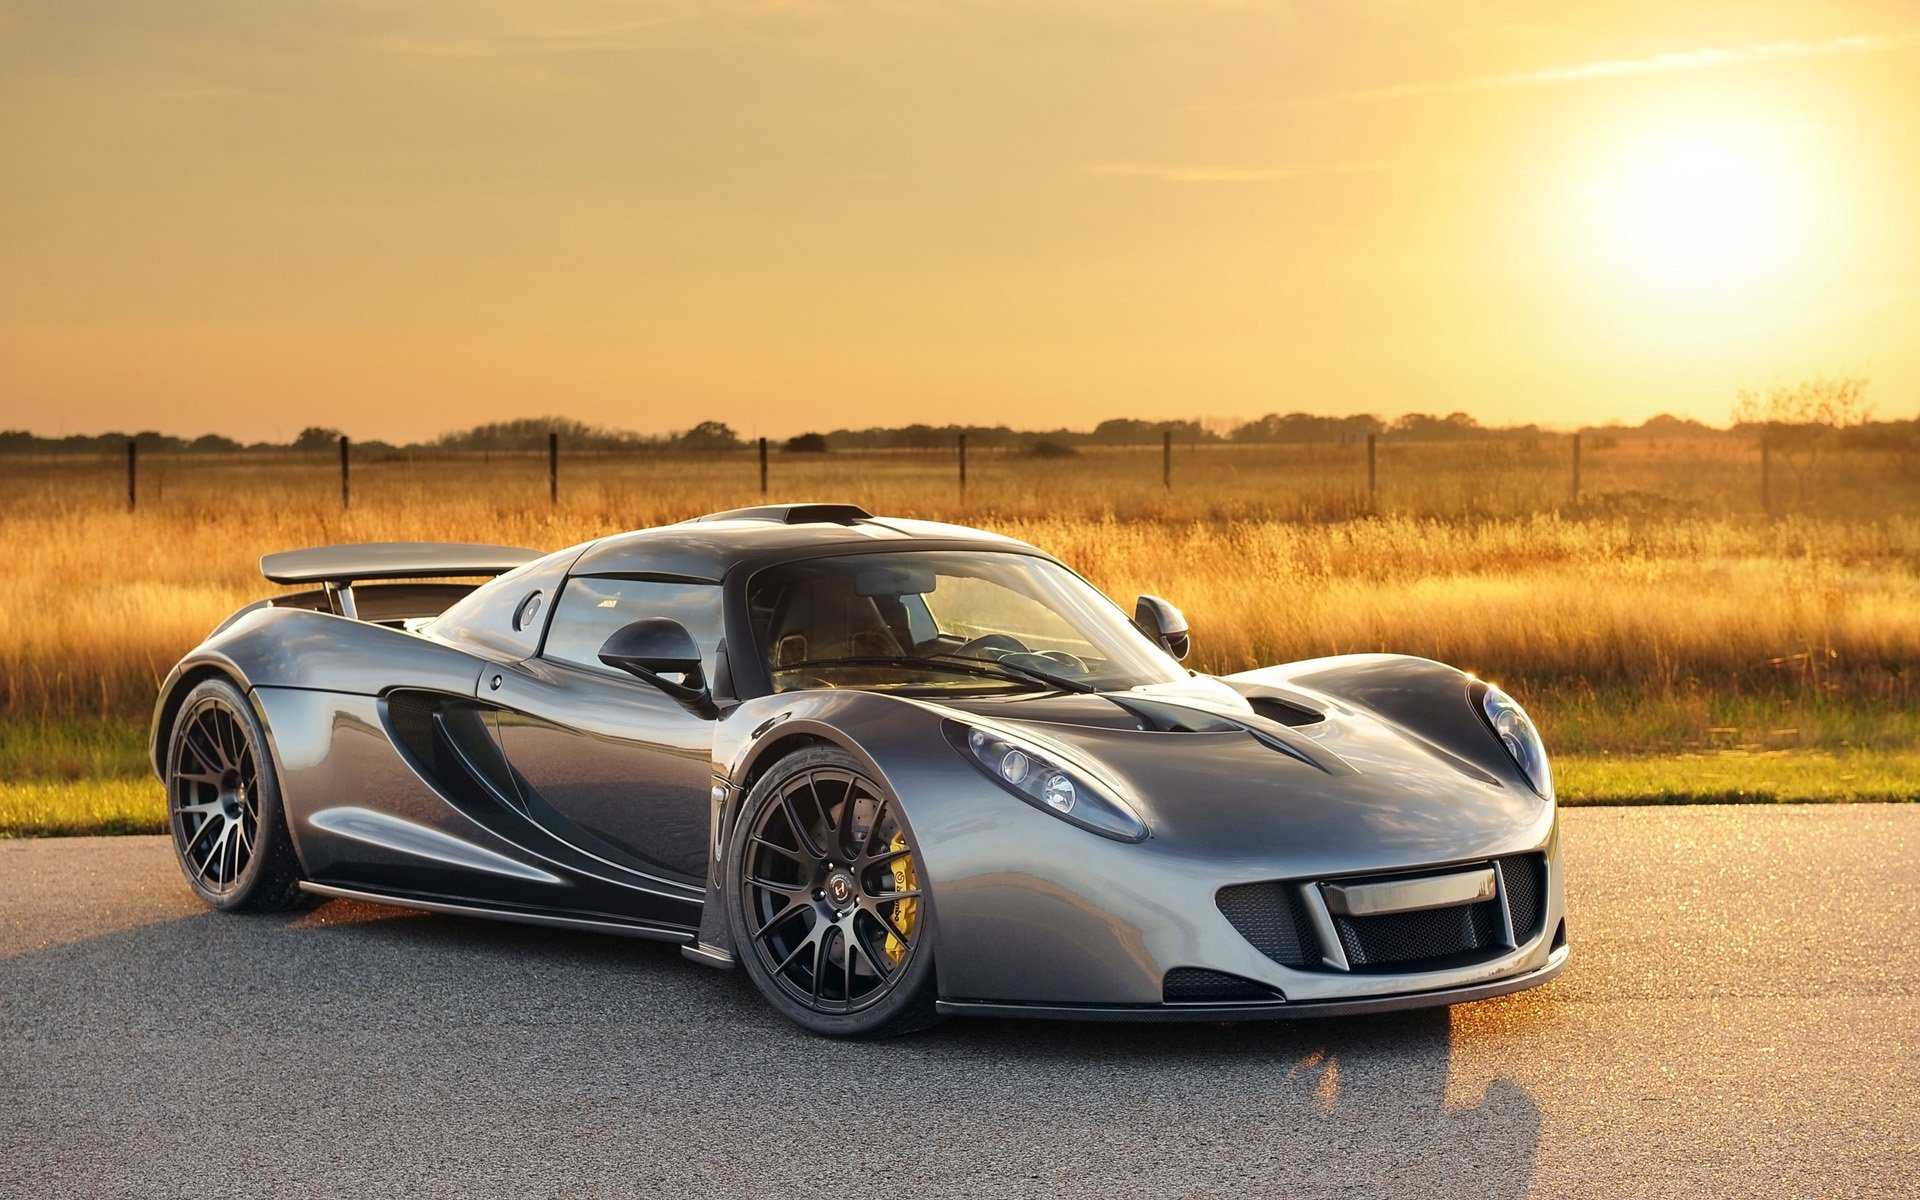 Vehicles - Hennessey Venom GT  Hennessey Car Supercar Vehicle Silver Car Wallpaper